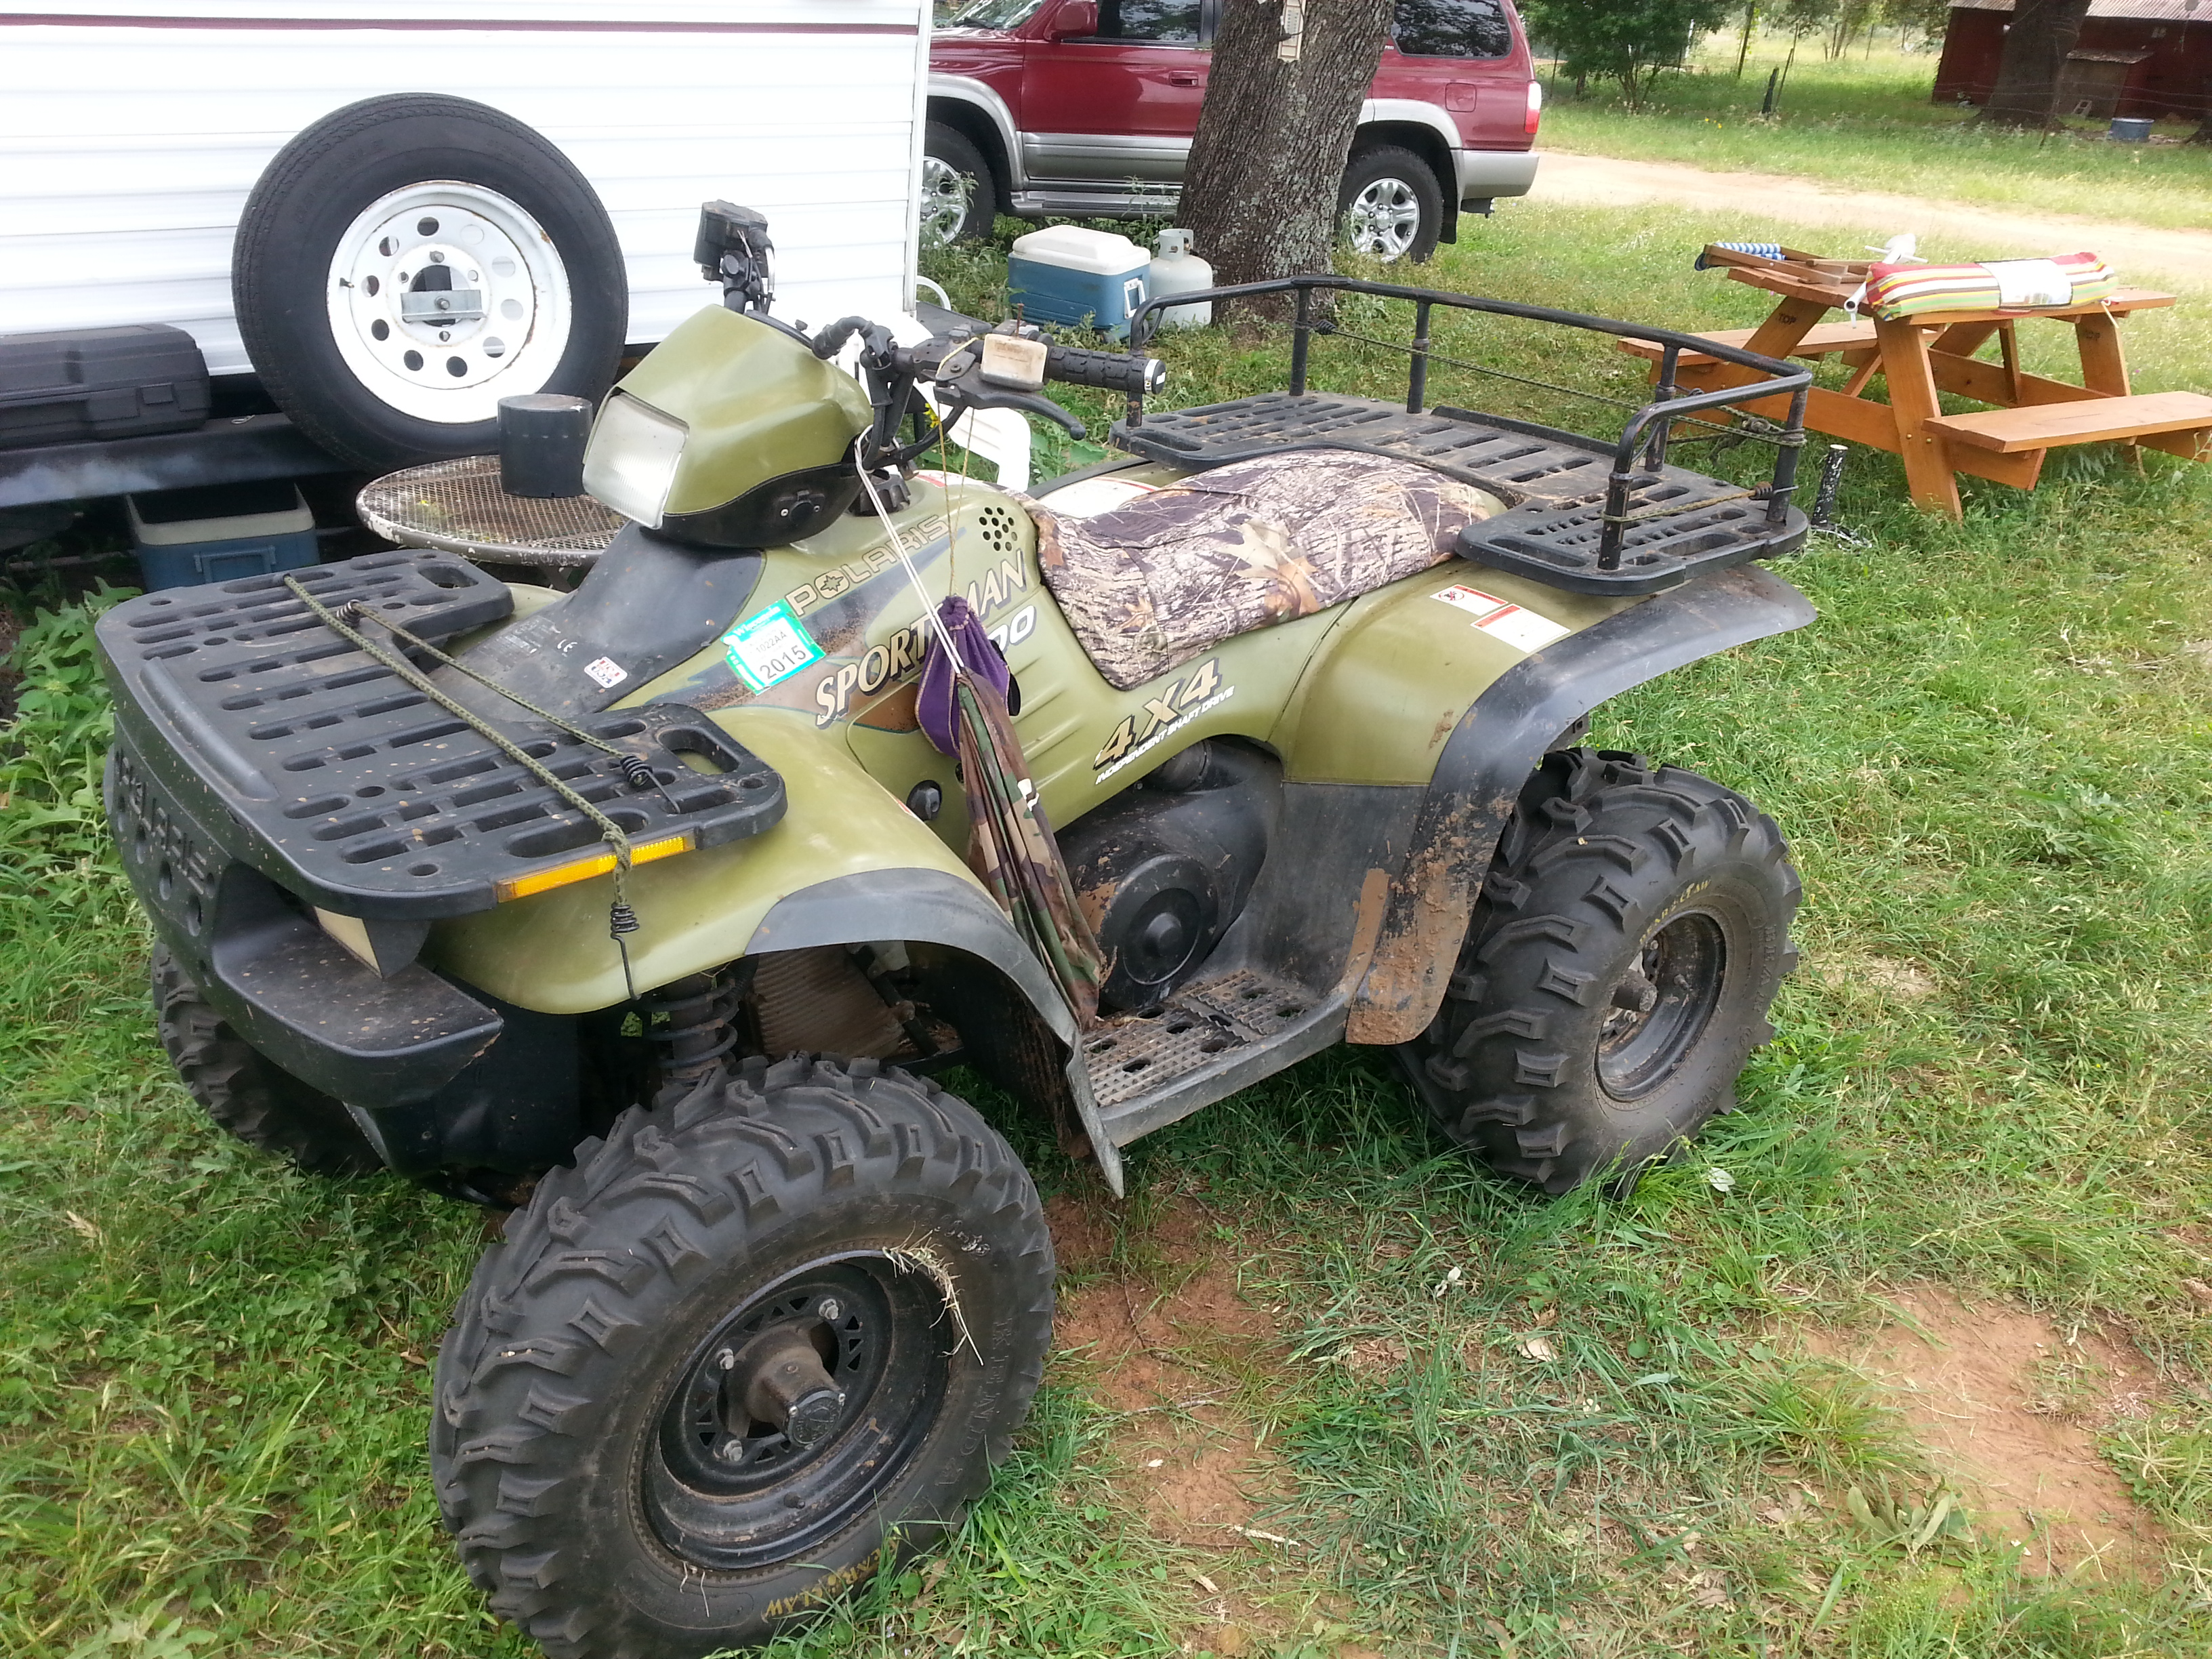 1999 Polaris Sportsman 500 Looking For Info Amp Advice